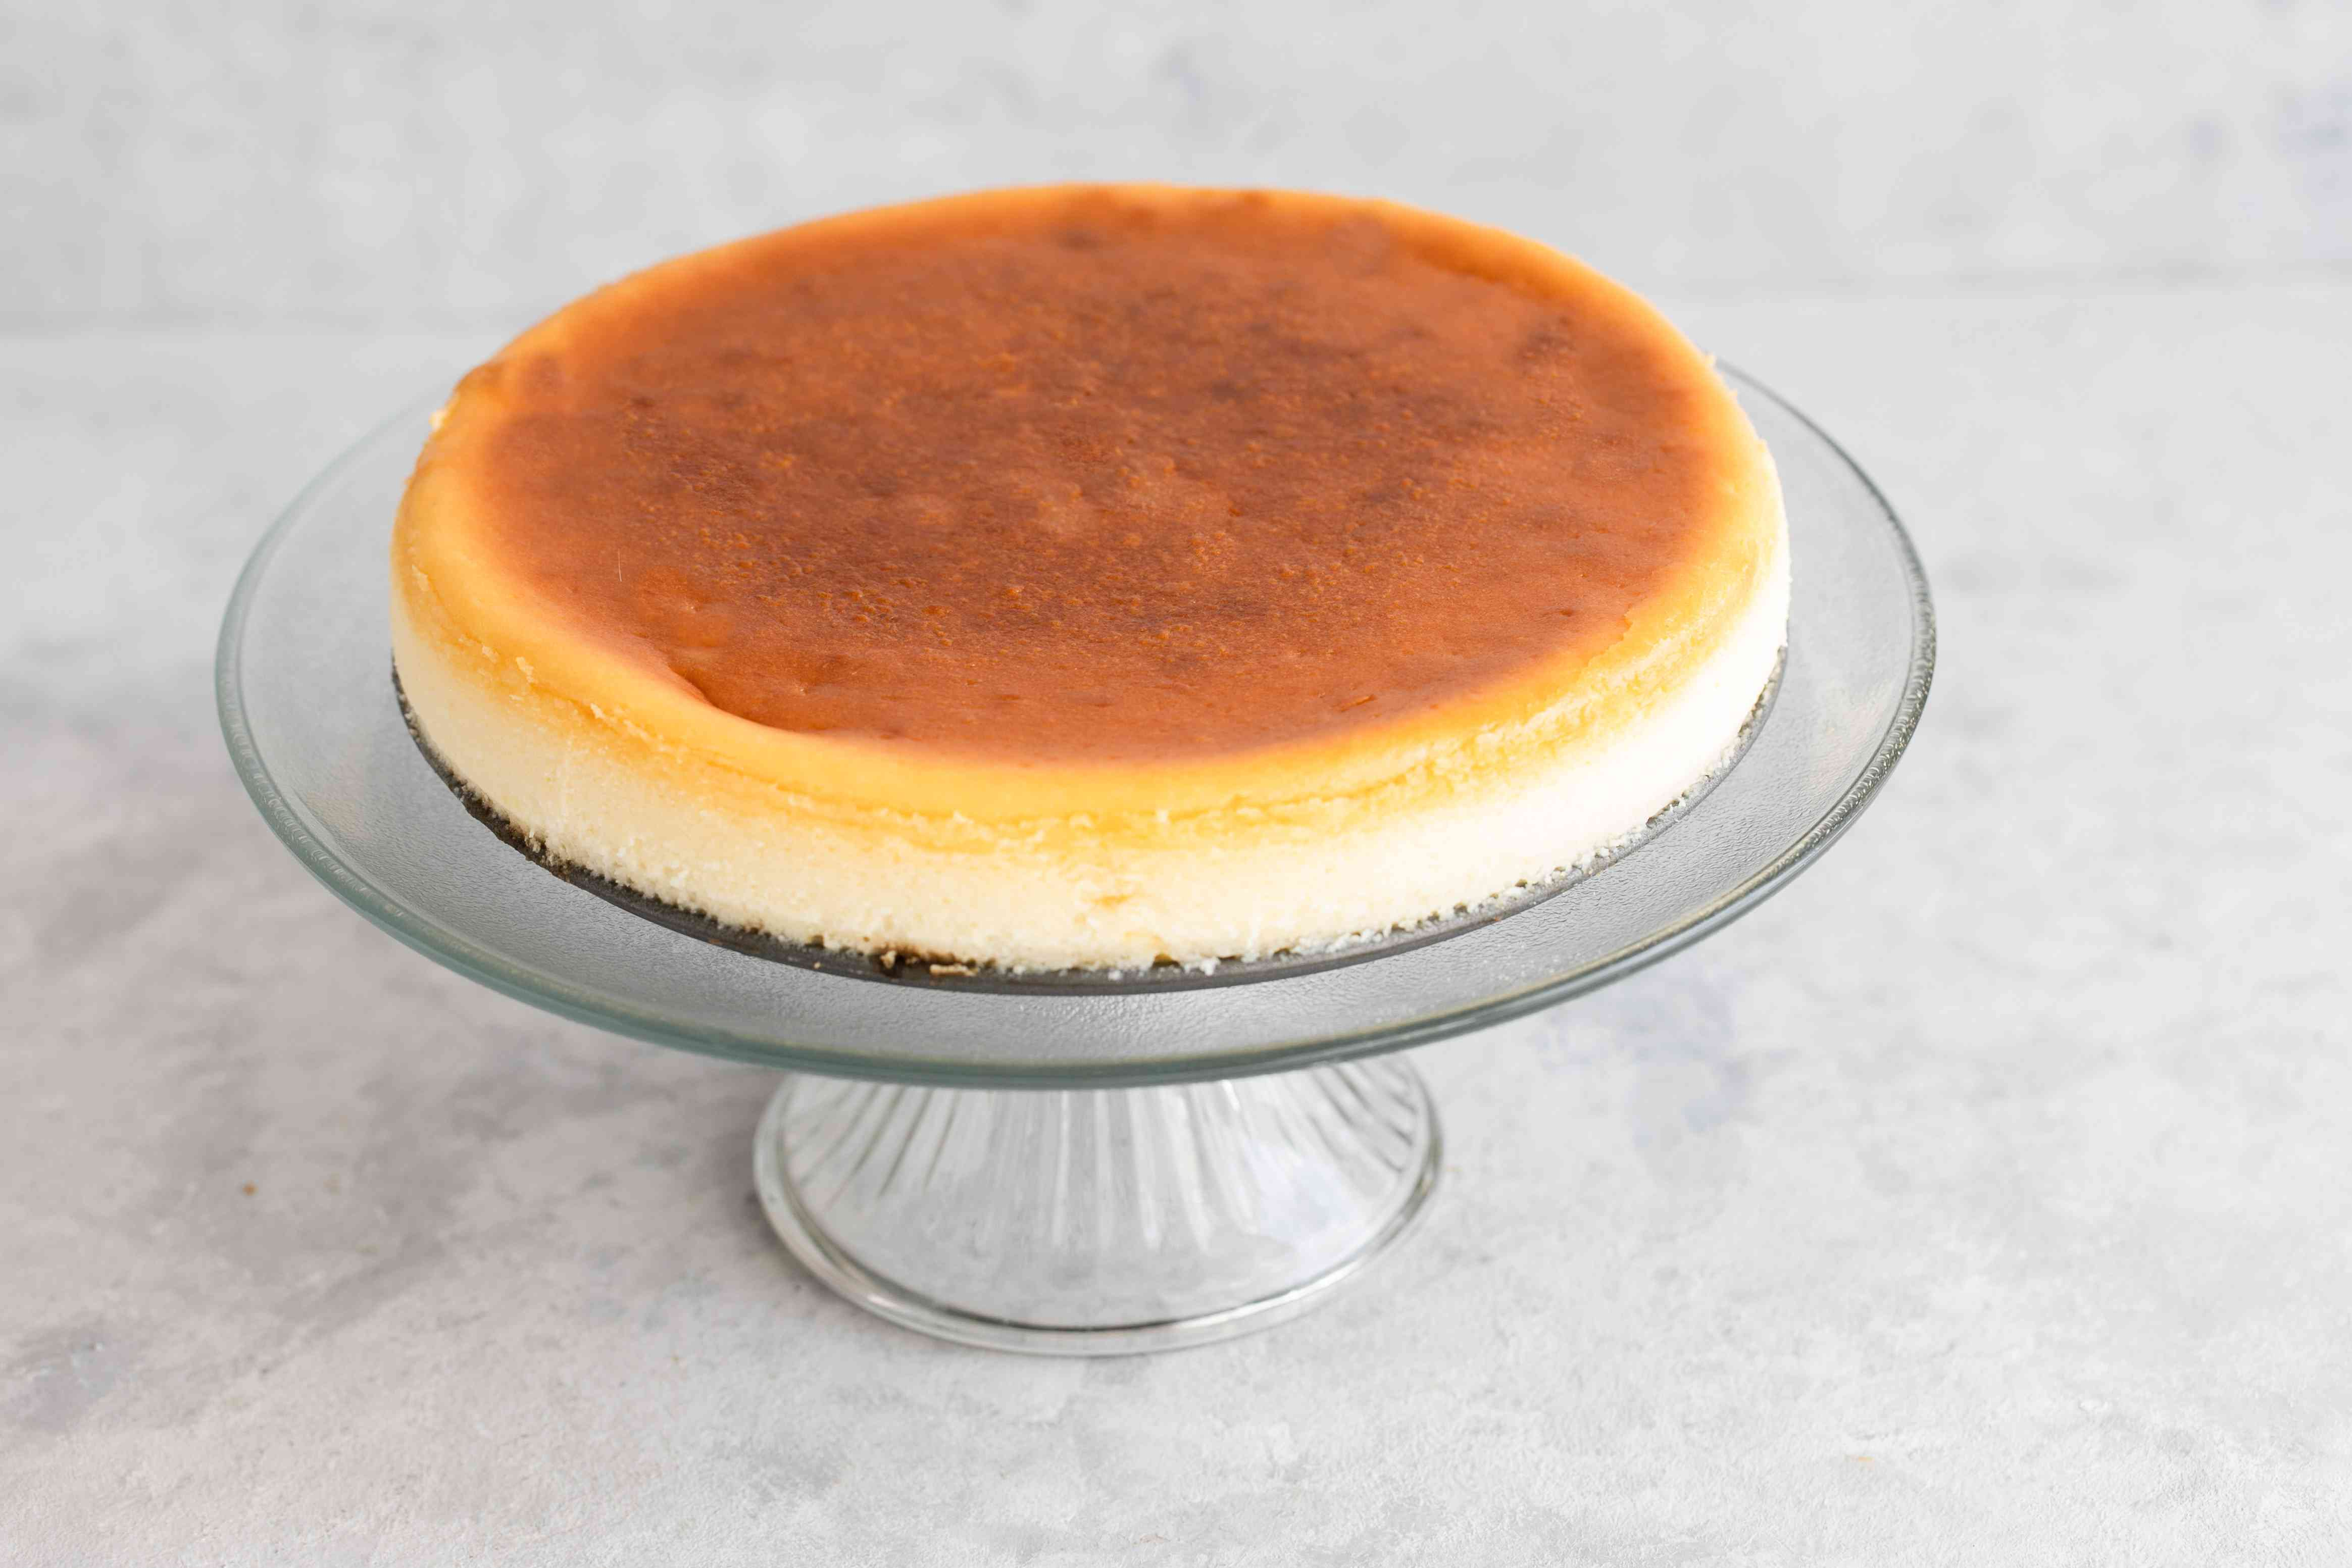 Place on cake stand